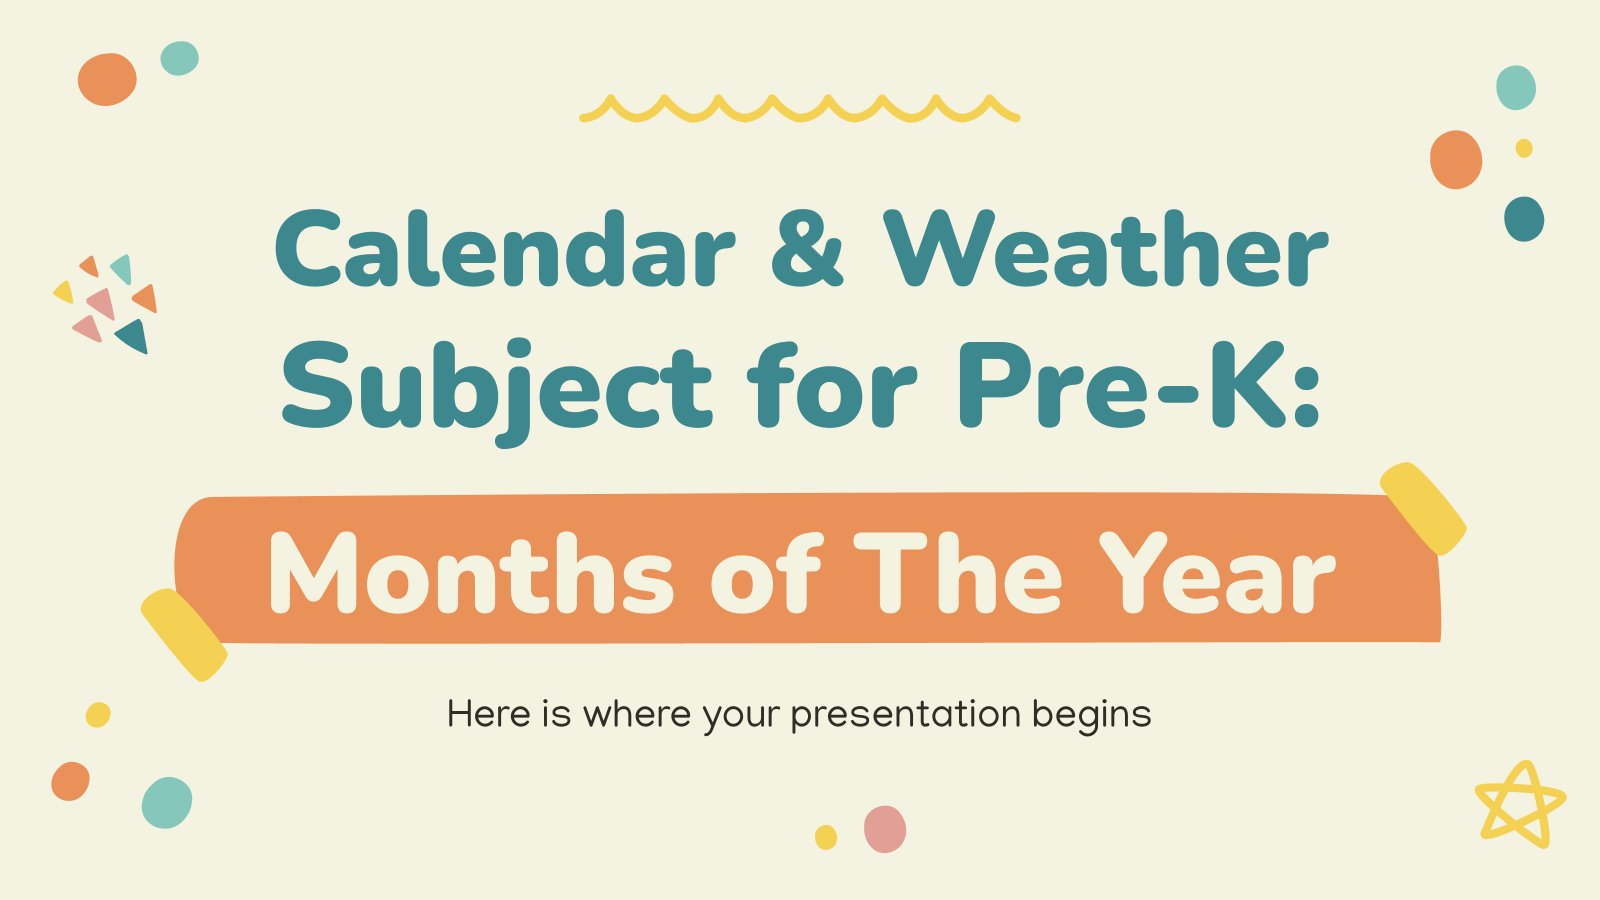 Calendar & Weather Subject for Pre-K: Months of The Year presentation template